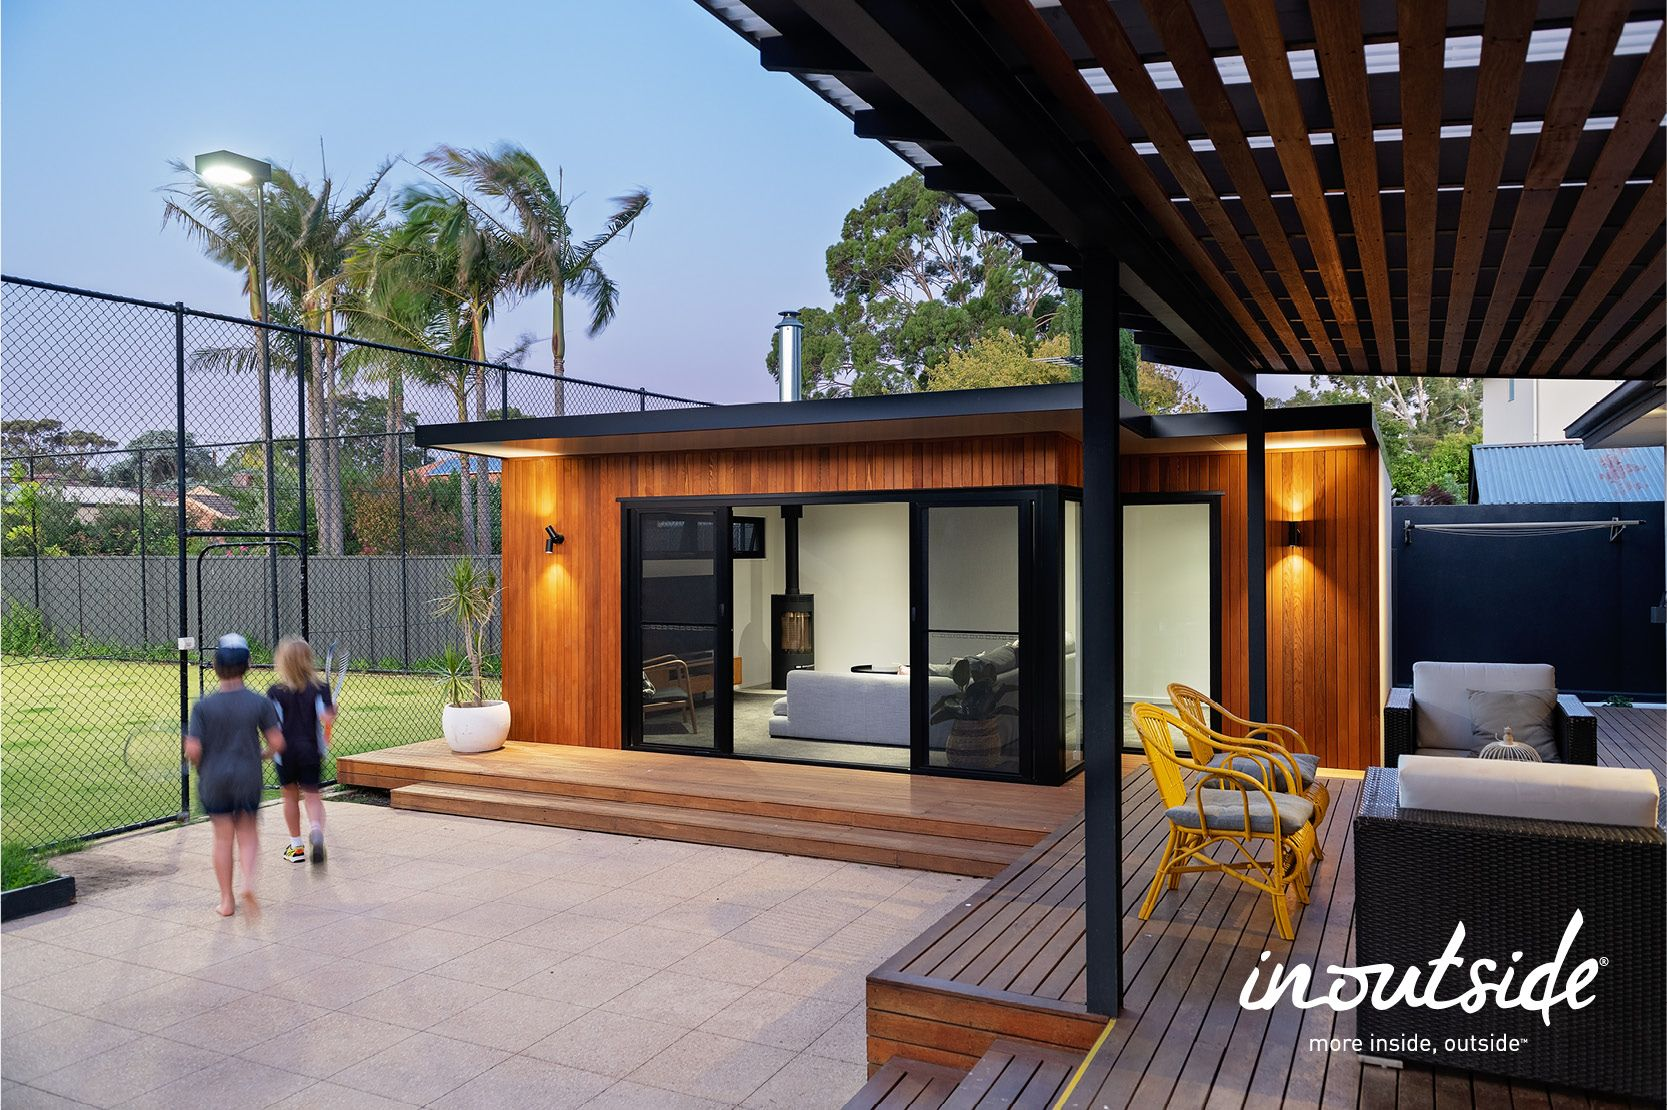 custom design by inoutside in 2020 | Outdoor rooms ... on Ab And Outdoor Living id=15351